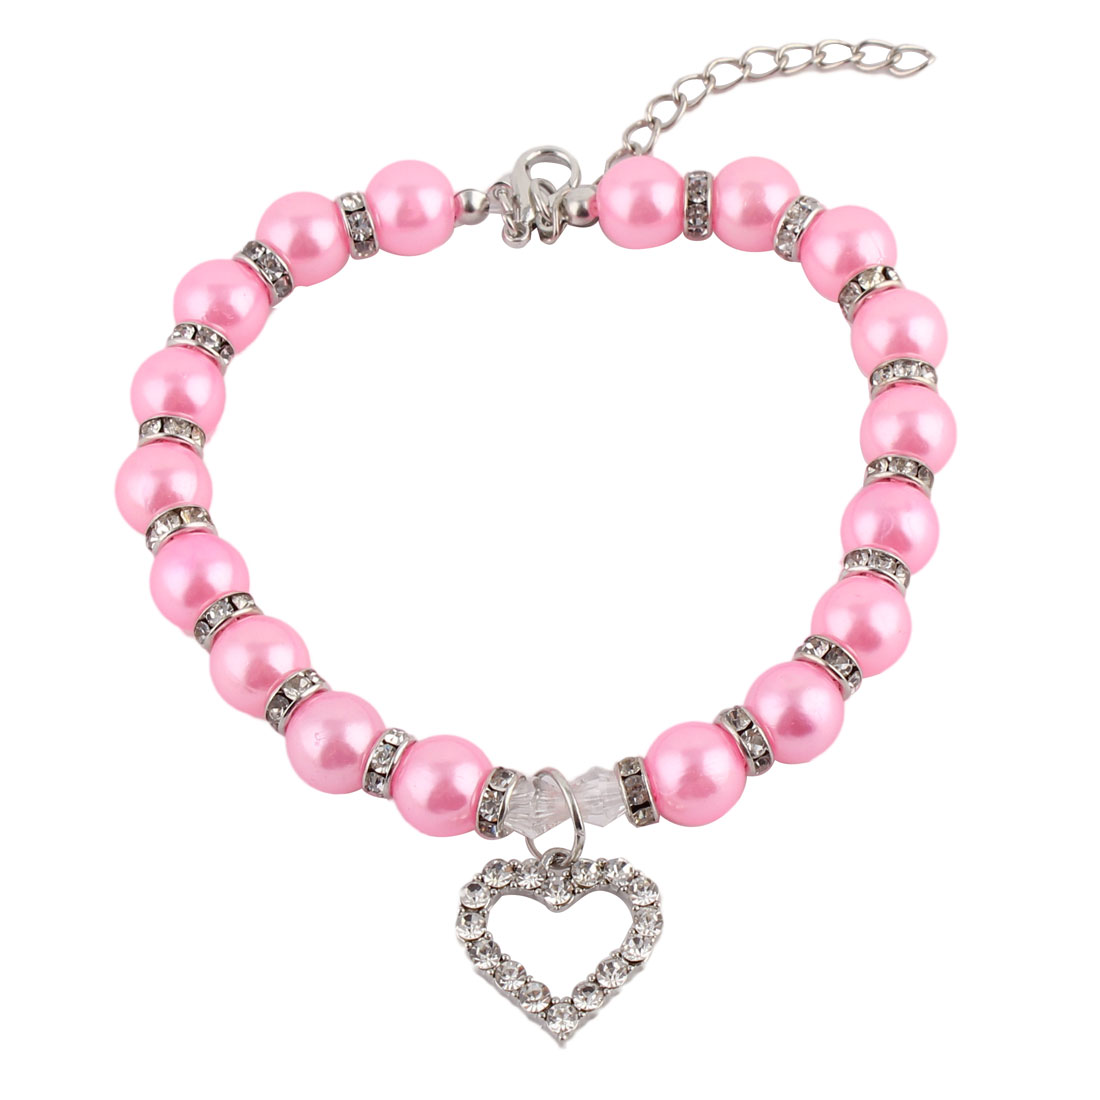 Dog Plastic Beads Linked Heart Shaped Pendant Decor Collar Necklace Dark Pink